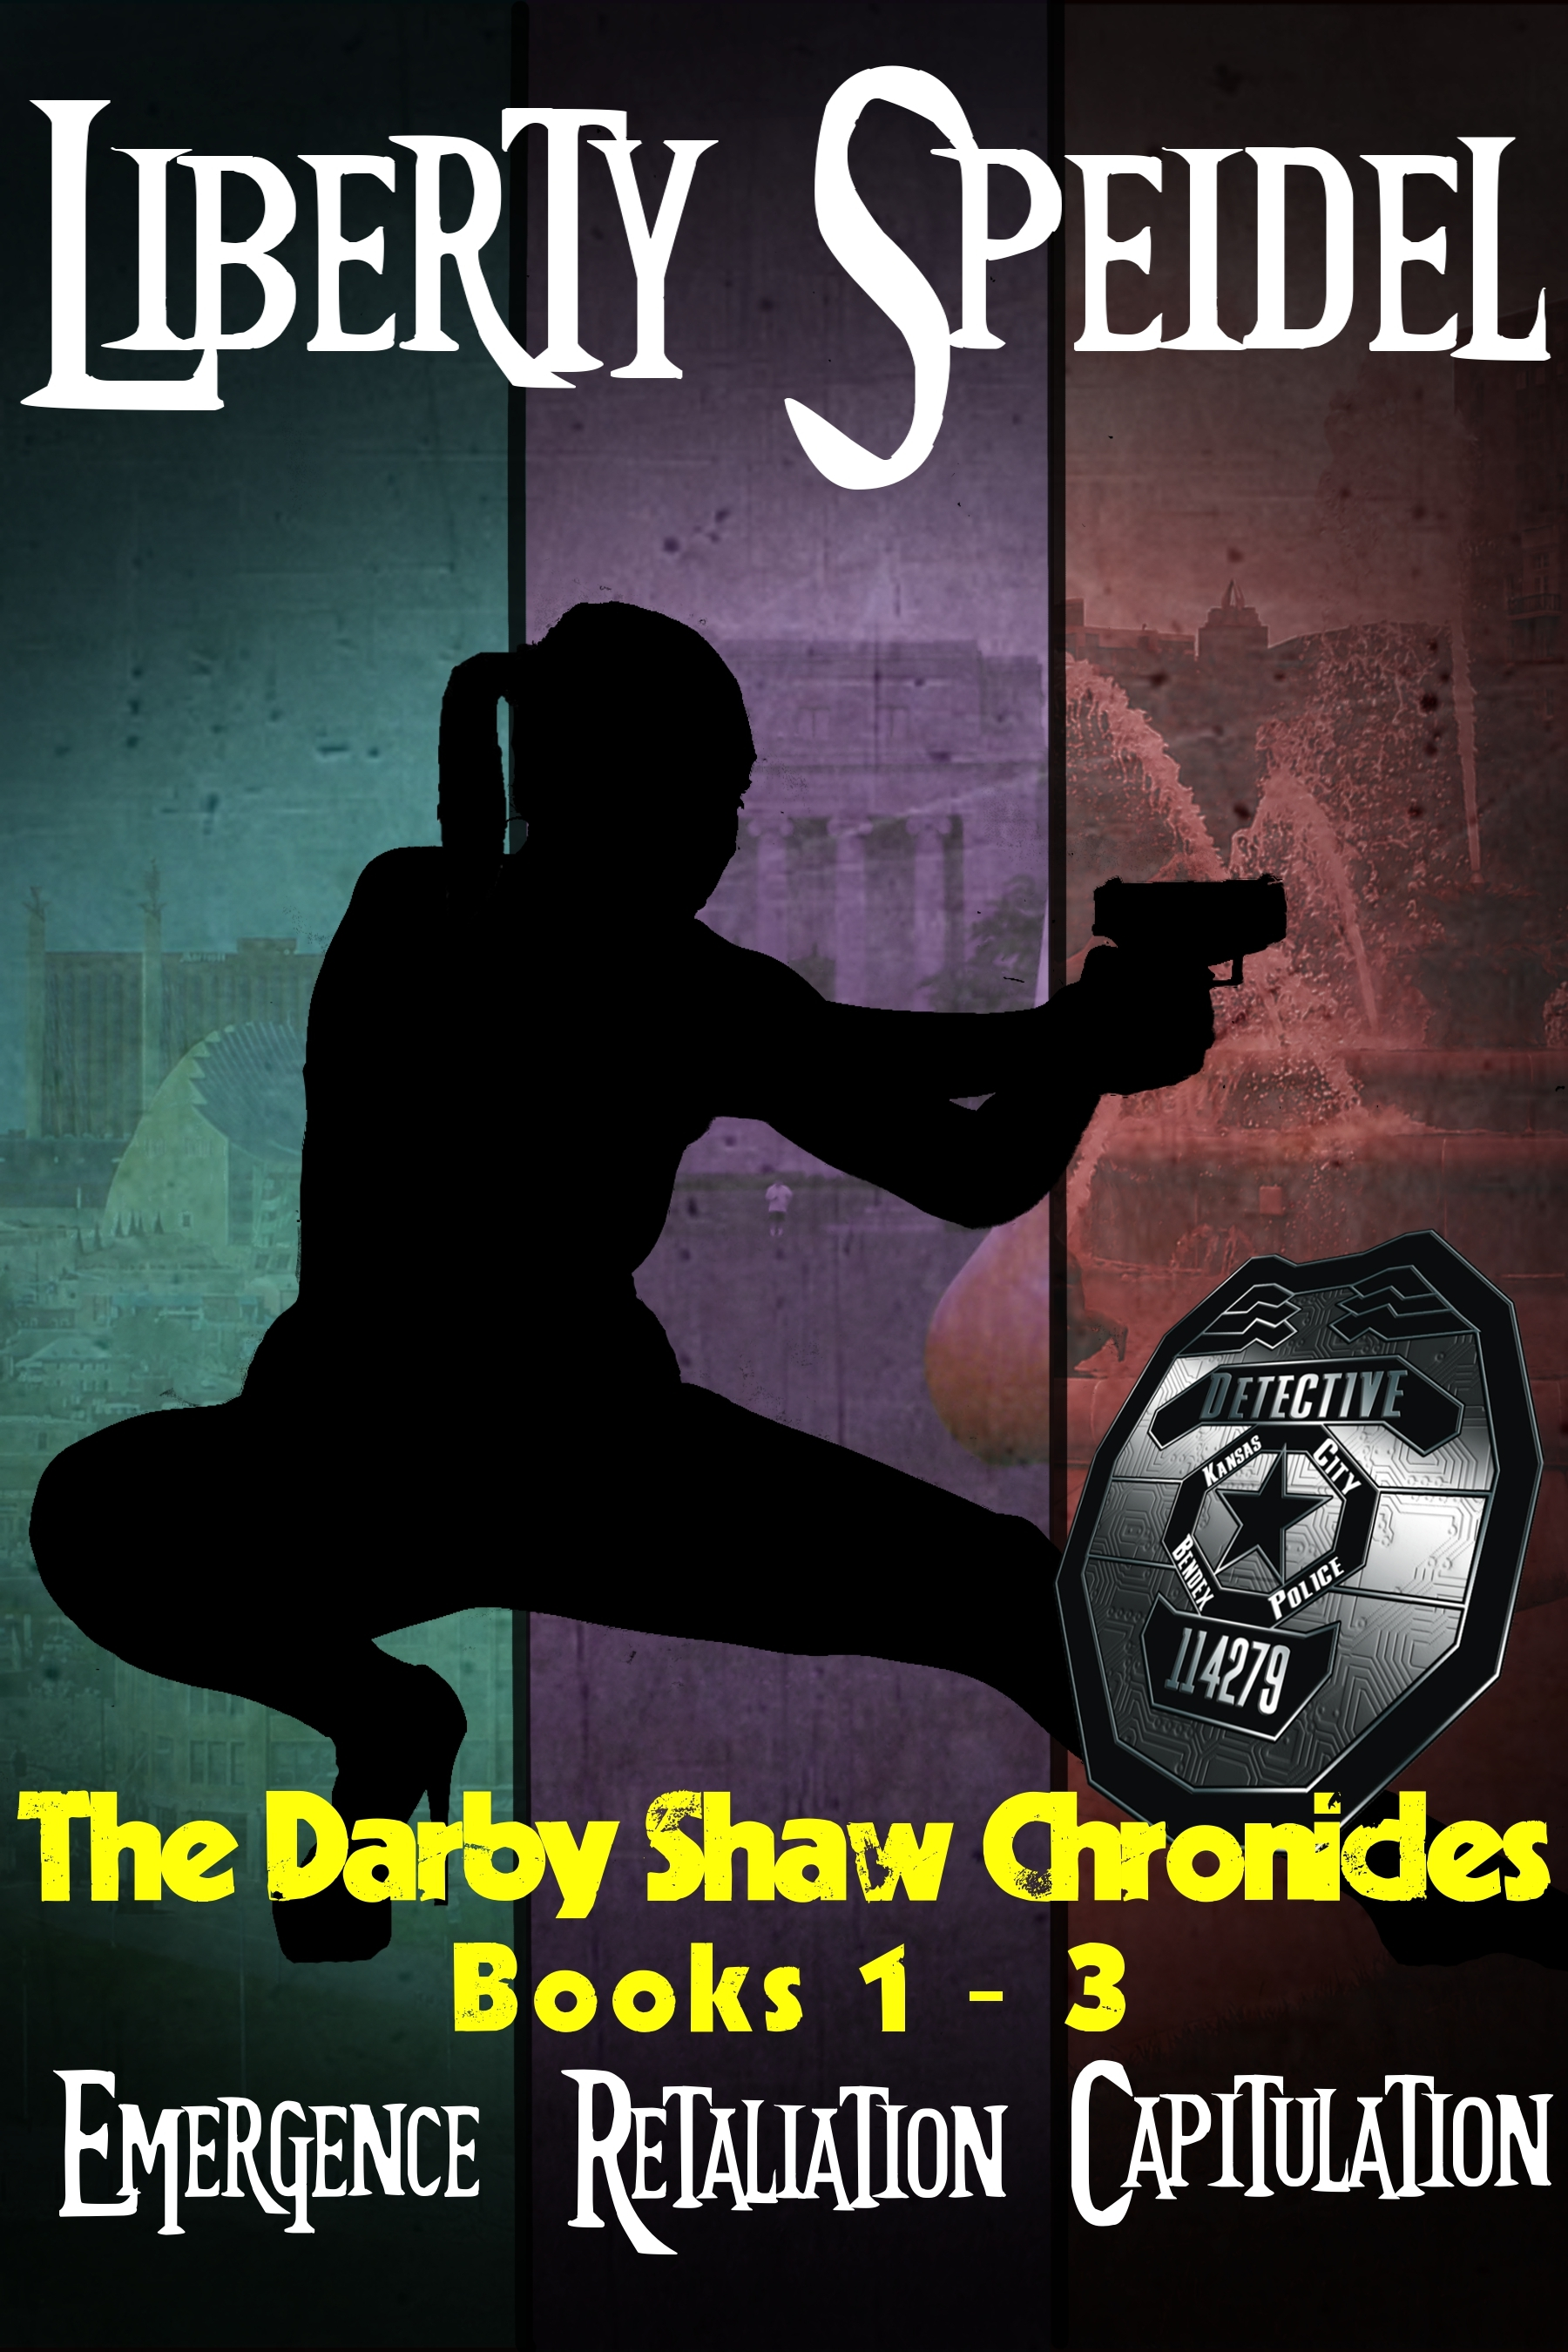 The Darby Shaw Chronicles: Books 1 - 3  (The Darby Shaw Chronicles, #1-3)  by  Liberty Speidel